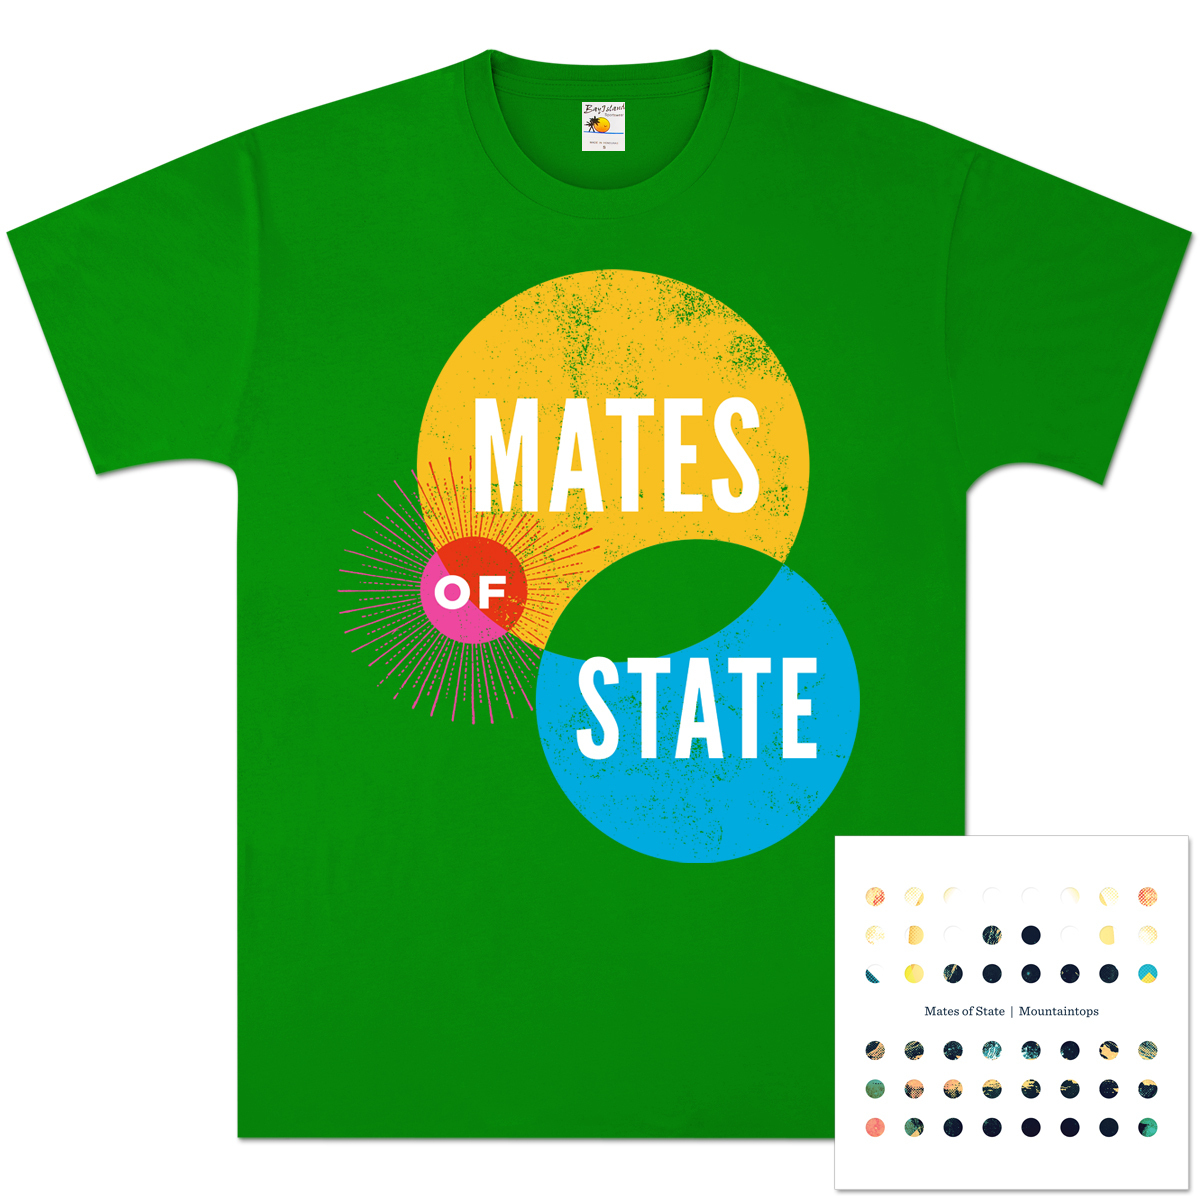 Mates of State Mountaintops CD & T-Shirt Bundle